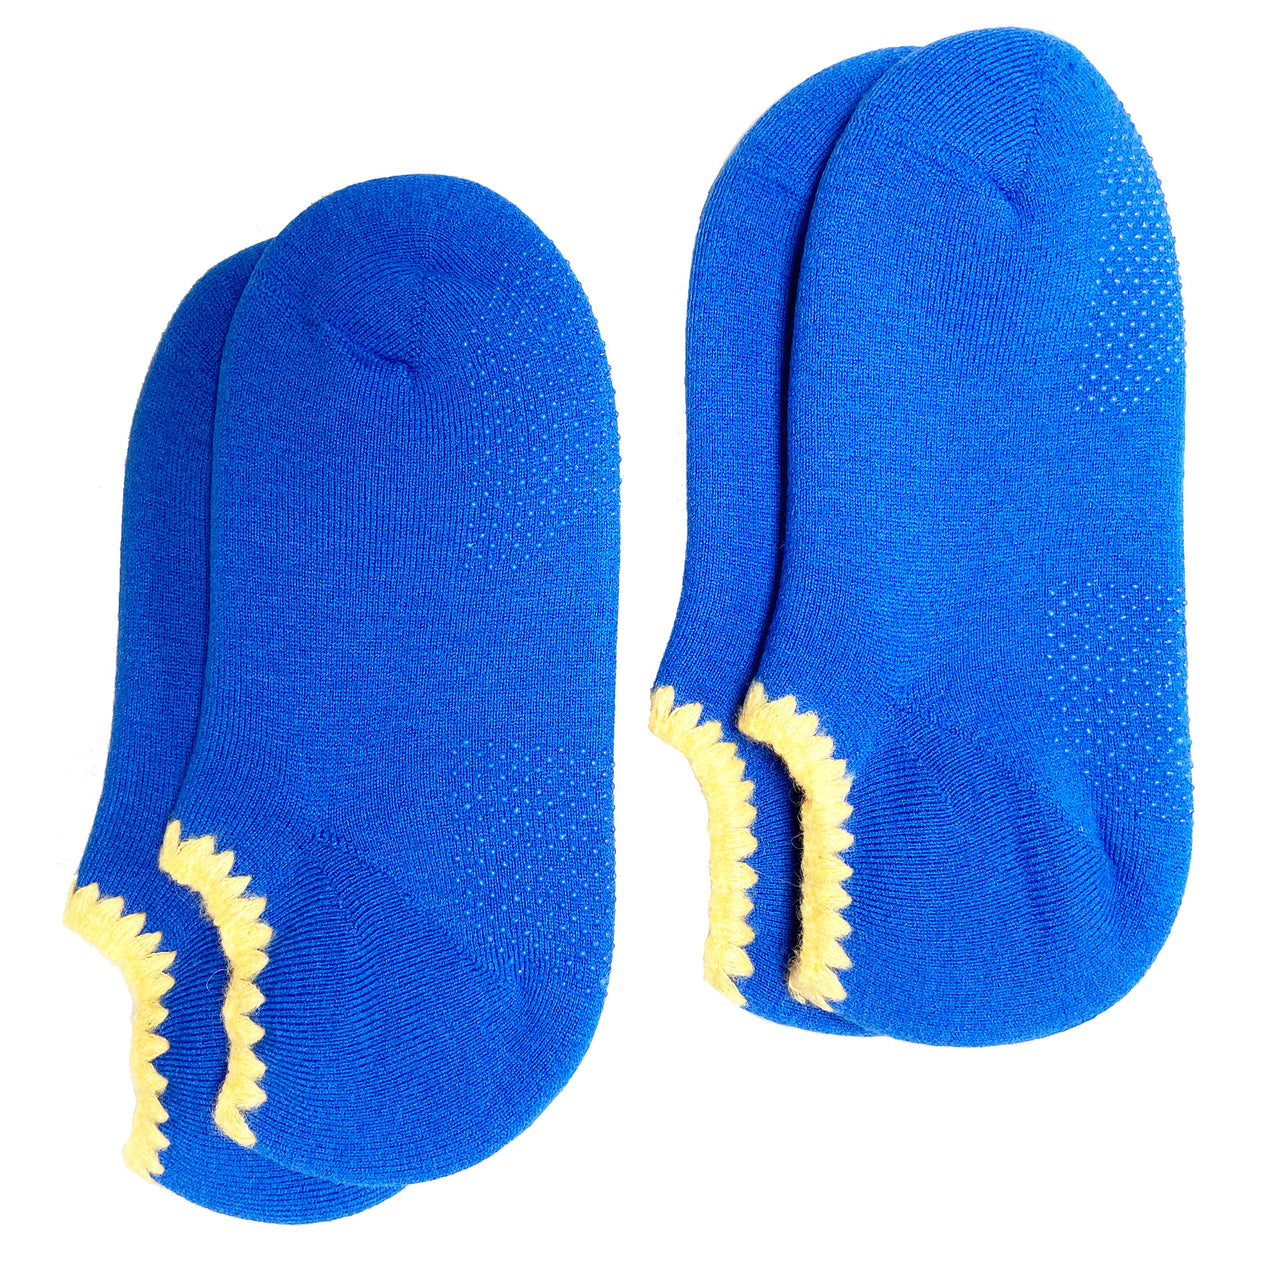 Special Deal * Set of 2 Pairs | CHERRYSTONE® Slipper Socks with Grips | Size Large | Cobalt Blue - CHERRYSTONE